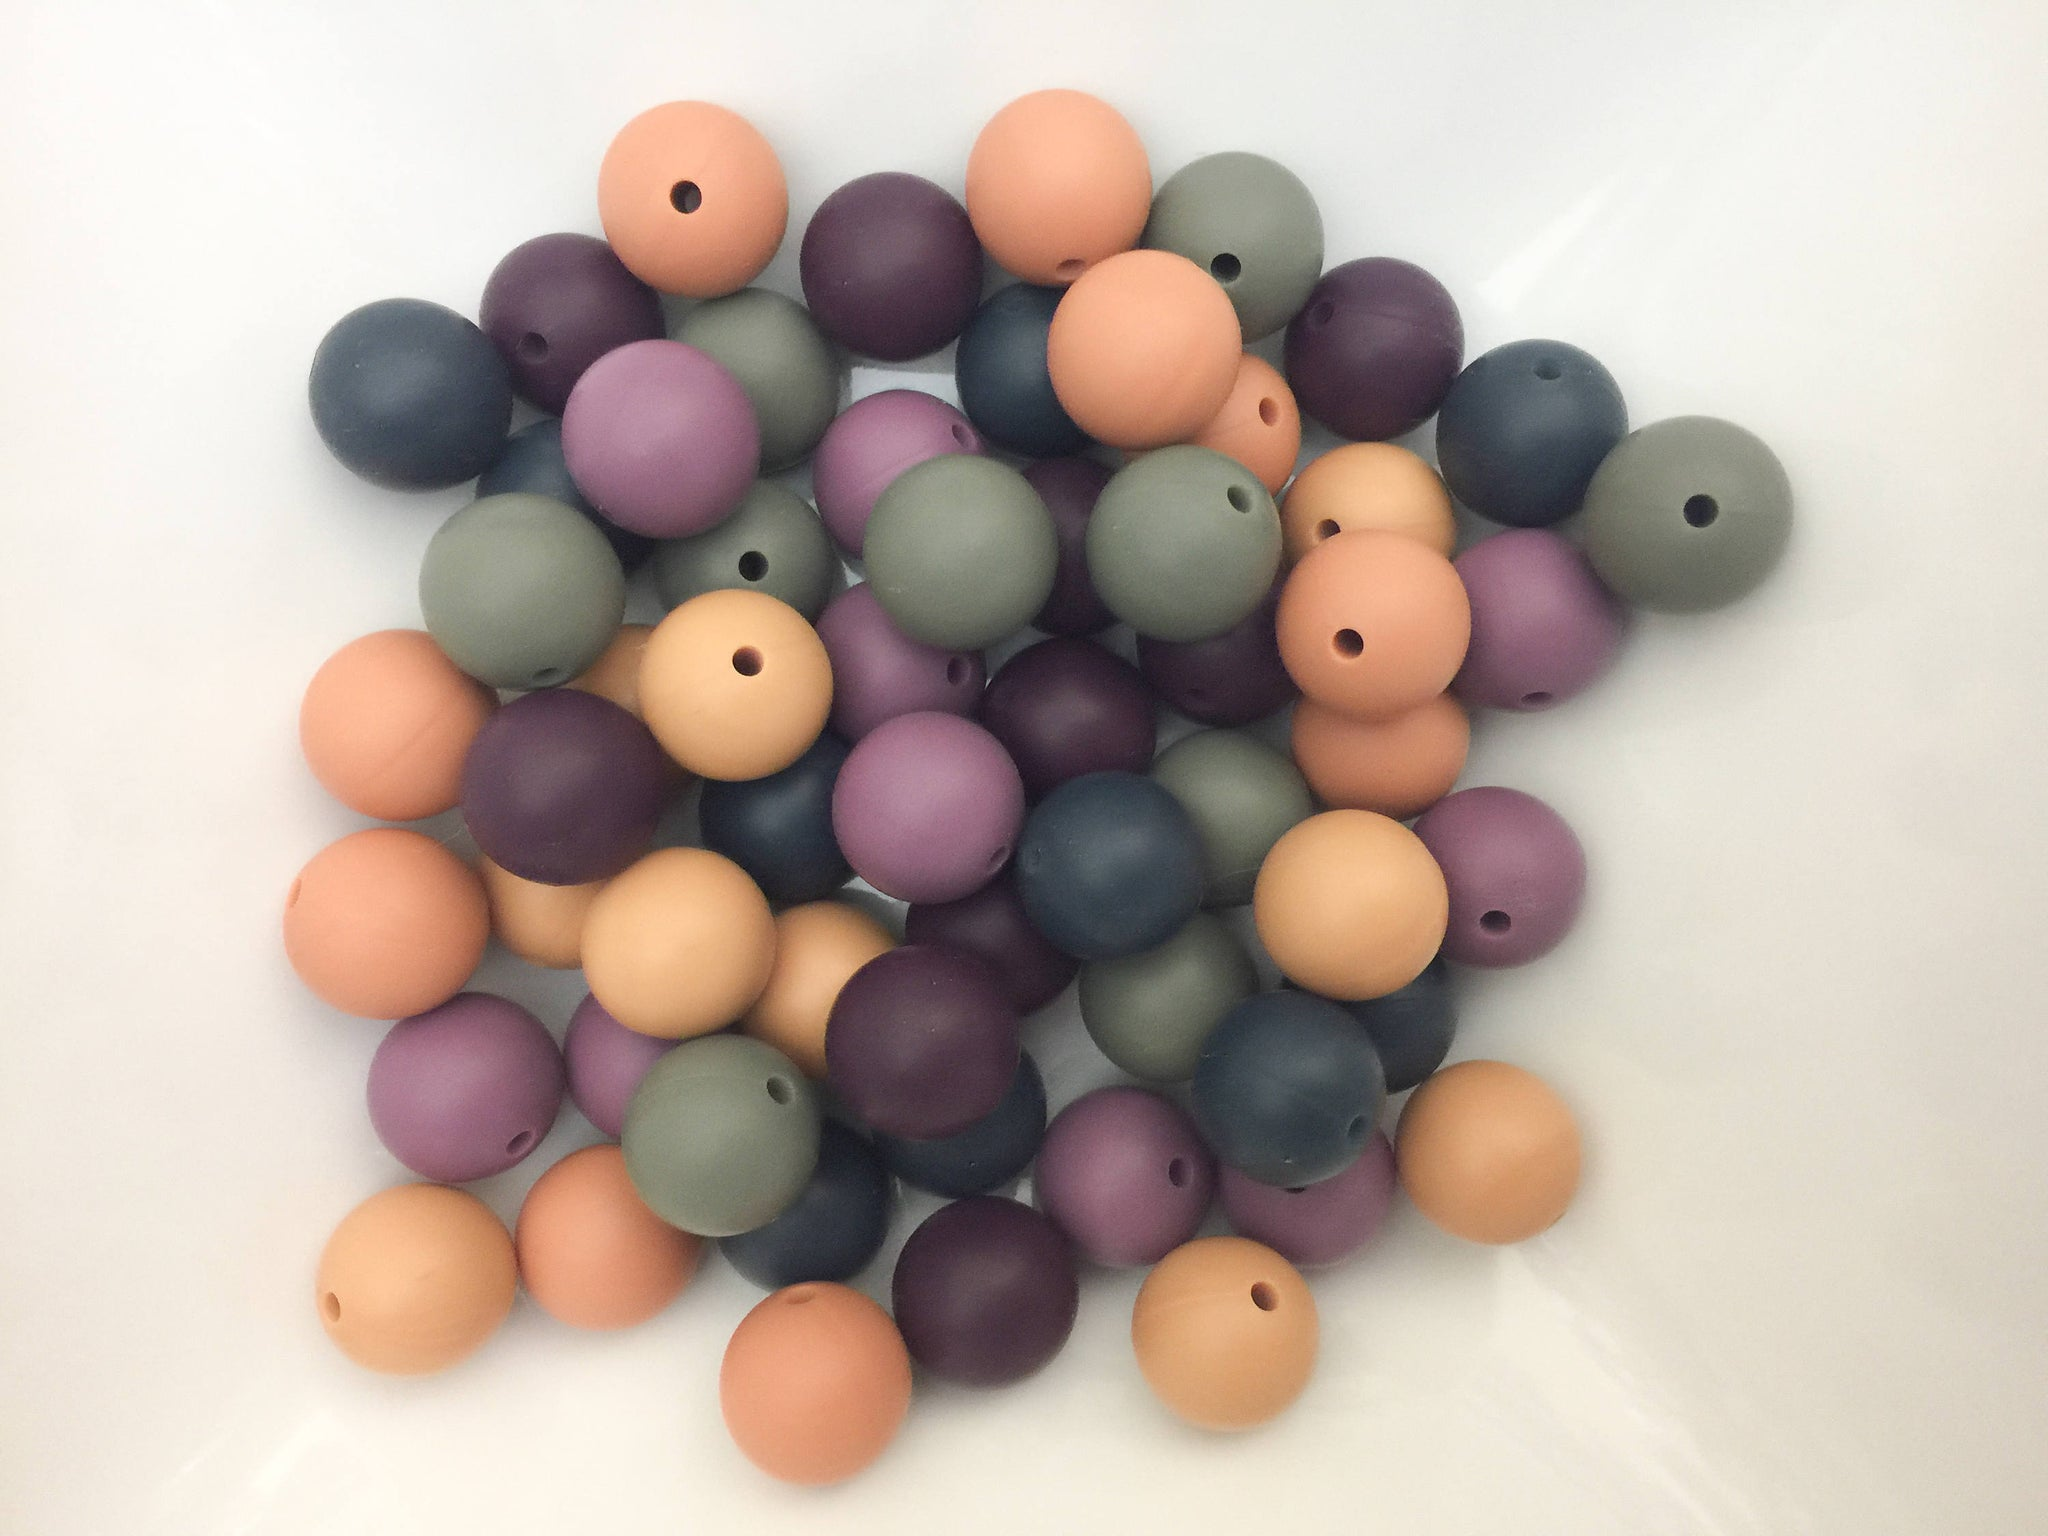 60 Bulk Silicone Teething Beads - Fall Autumn Colors - Bulk Silicone Beads Wholesale